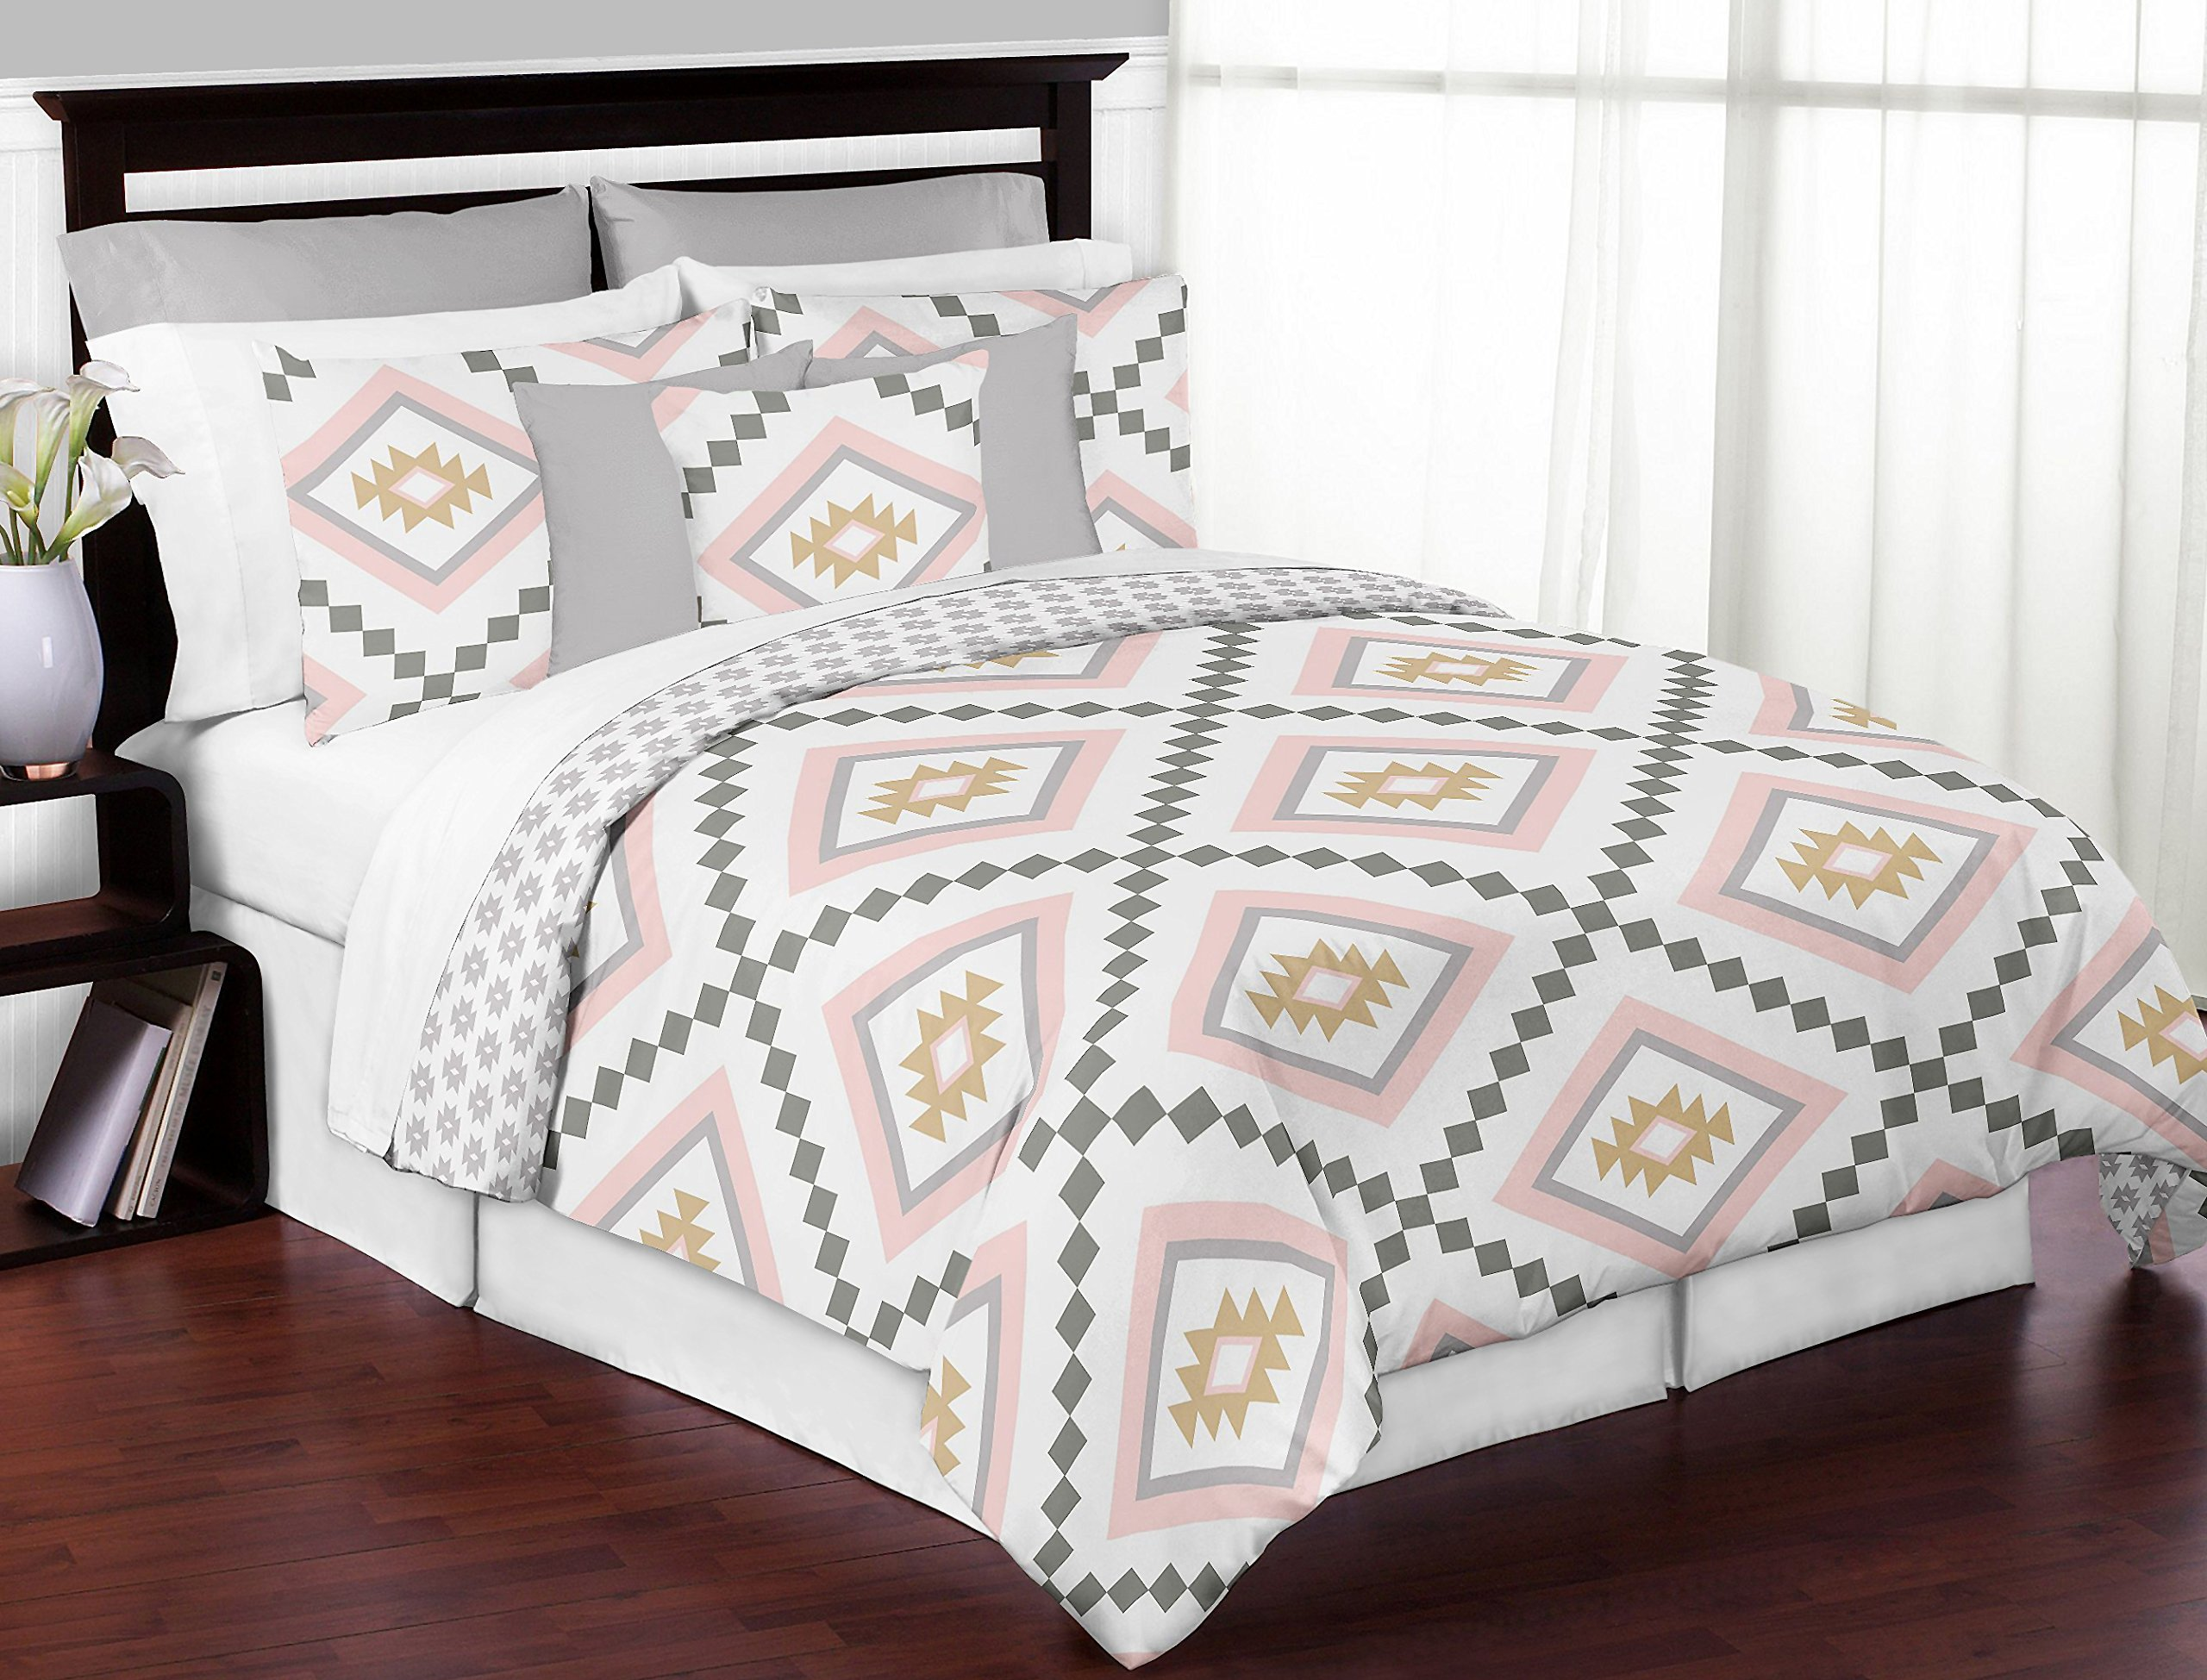 Sweet JoJo Designs 2-Piece Blush Pink and Grey Boho Decorative Accent Throw Pillows for Aztec Collection by